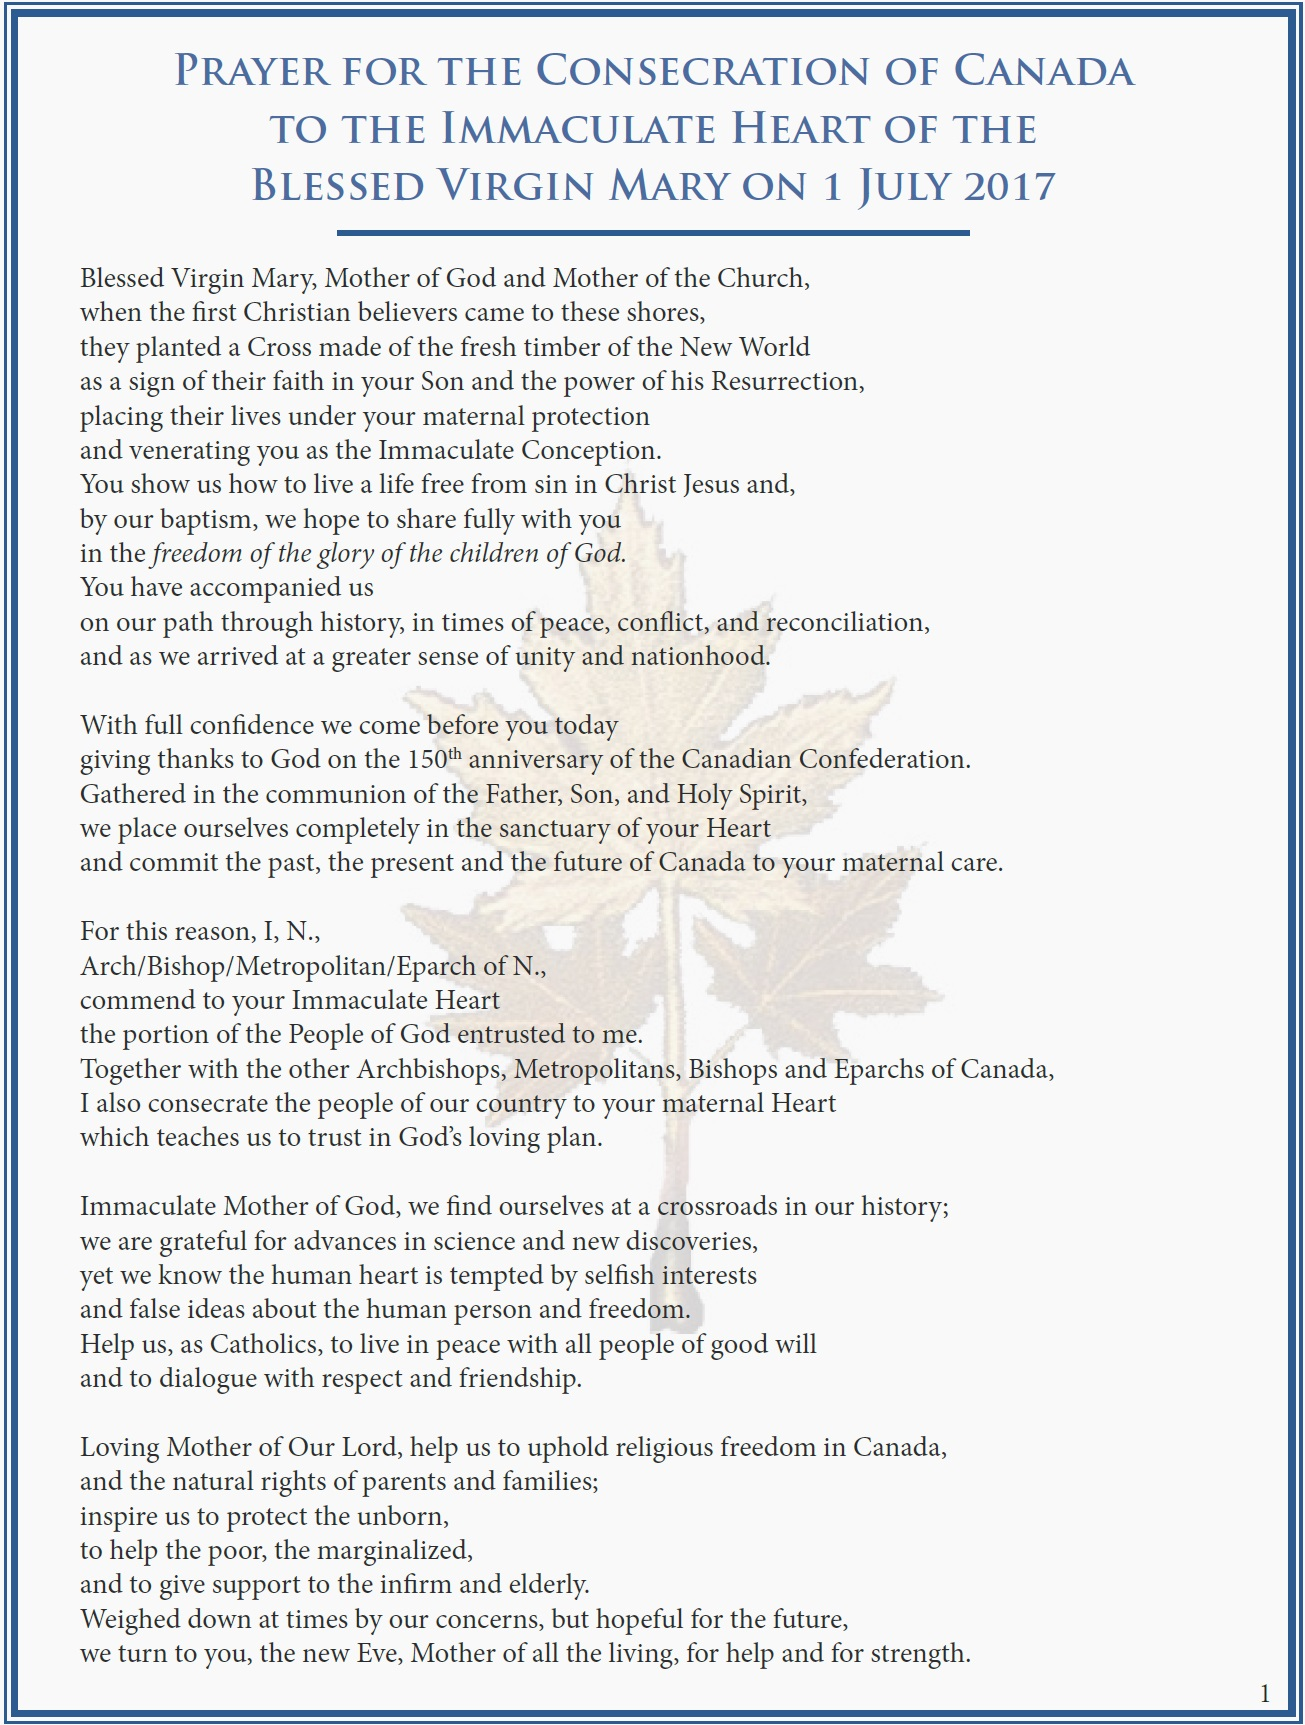 CCCB – July 1, 2017 – Prayer for Consecration of Canada to